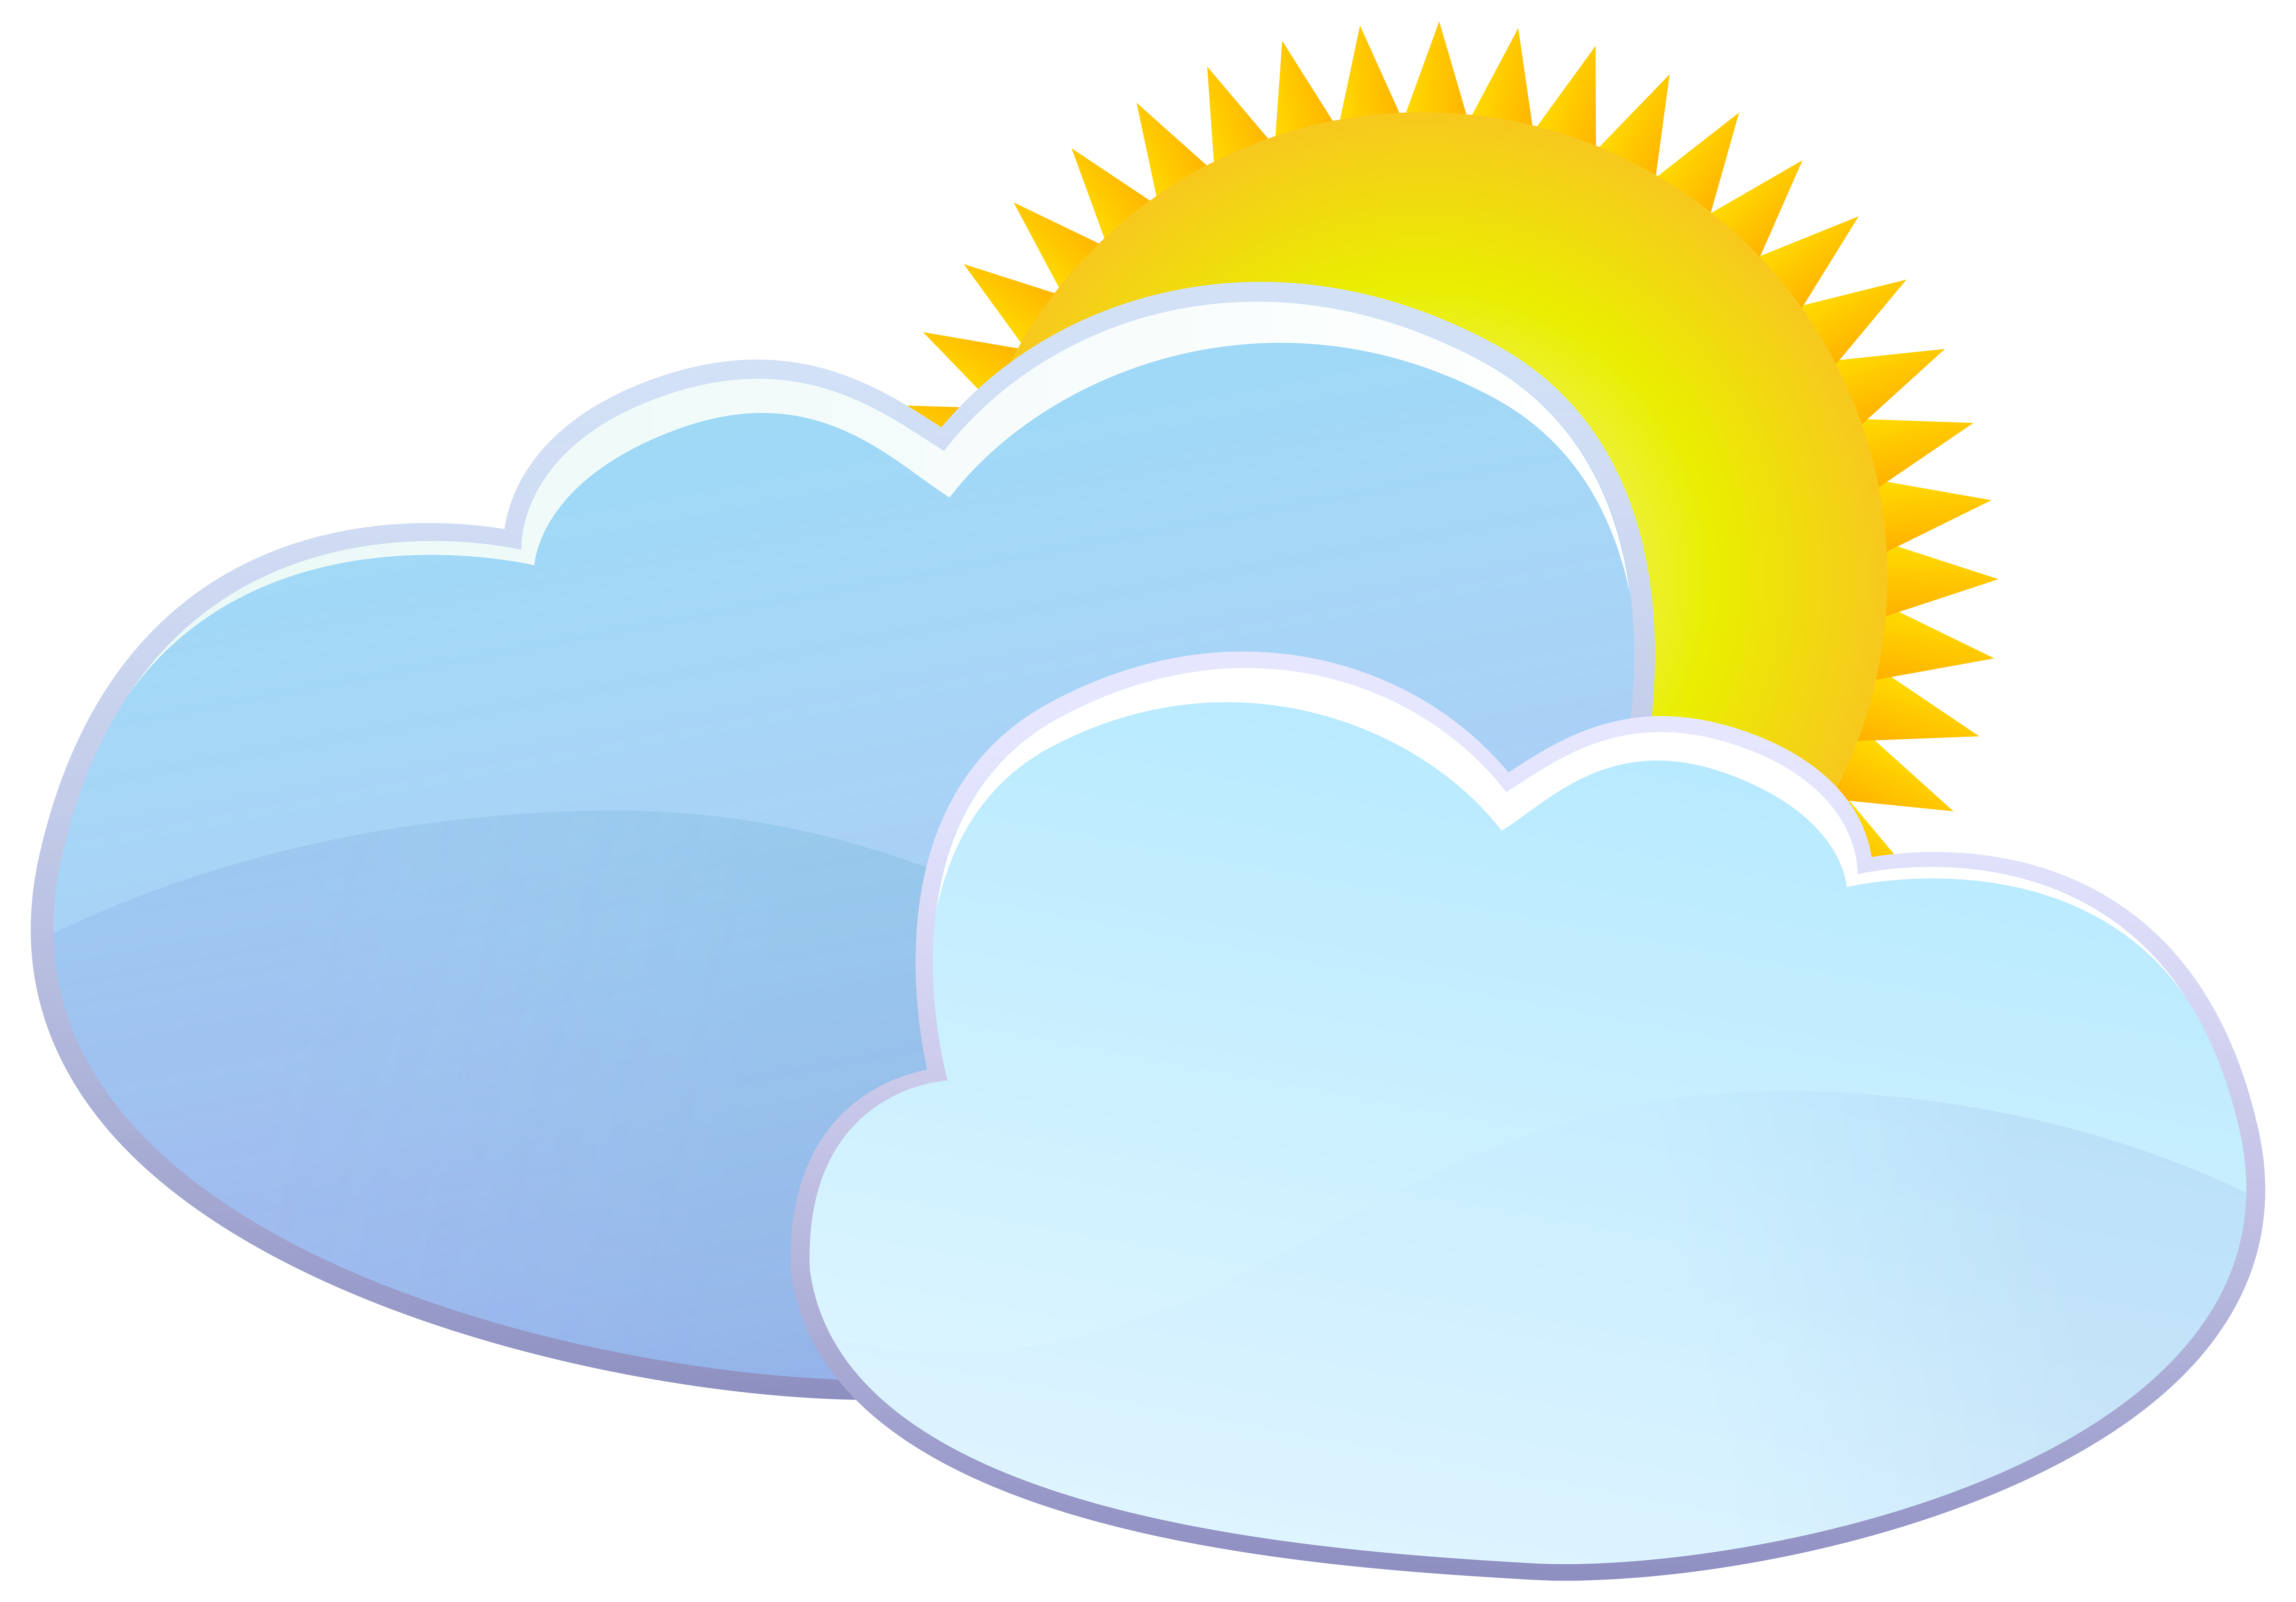 Sun and clouds clipart png. Weather icon clip art